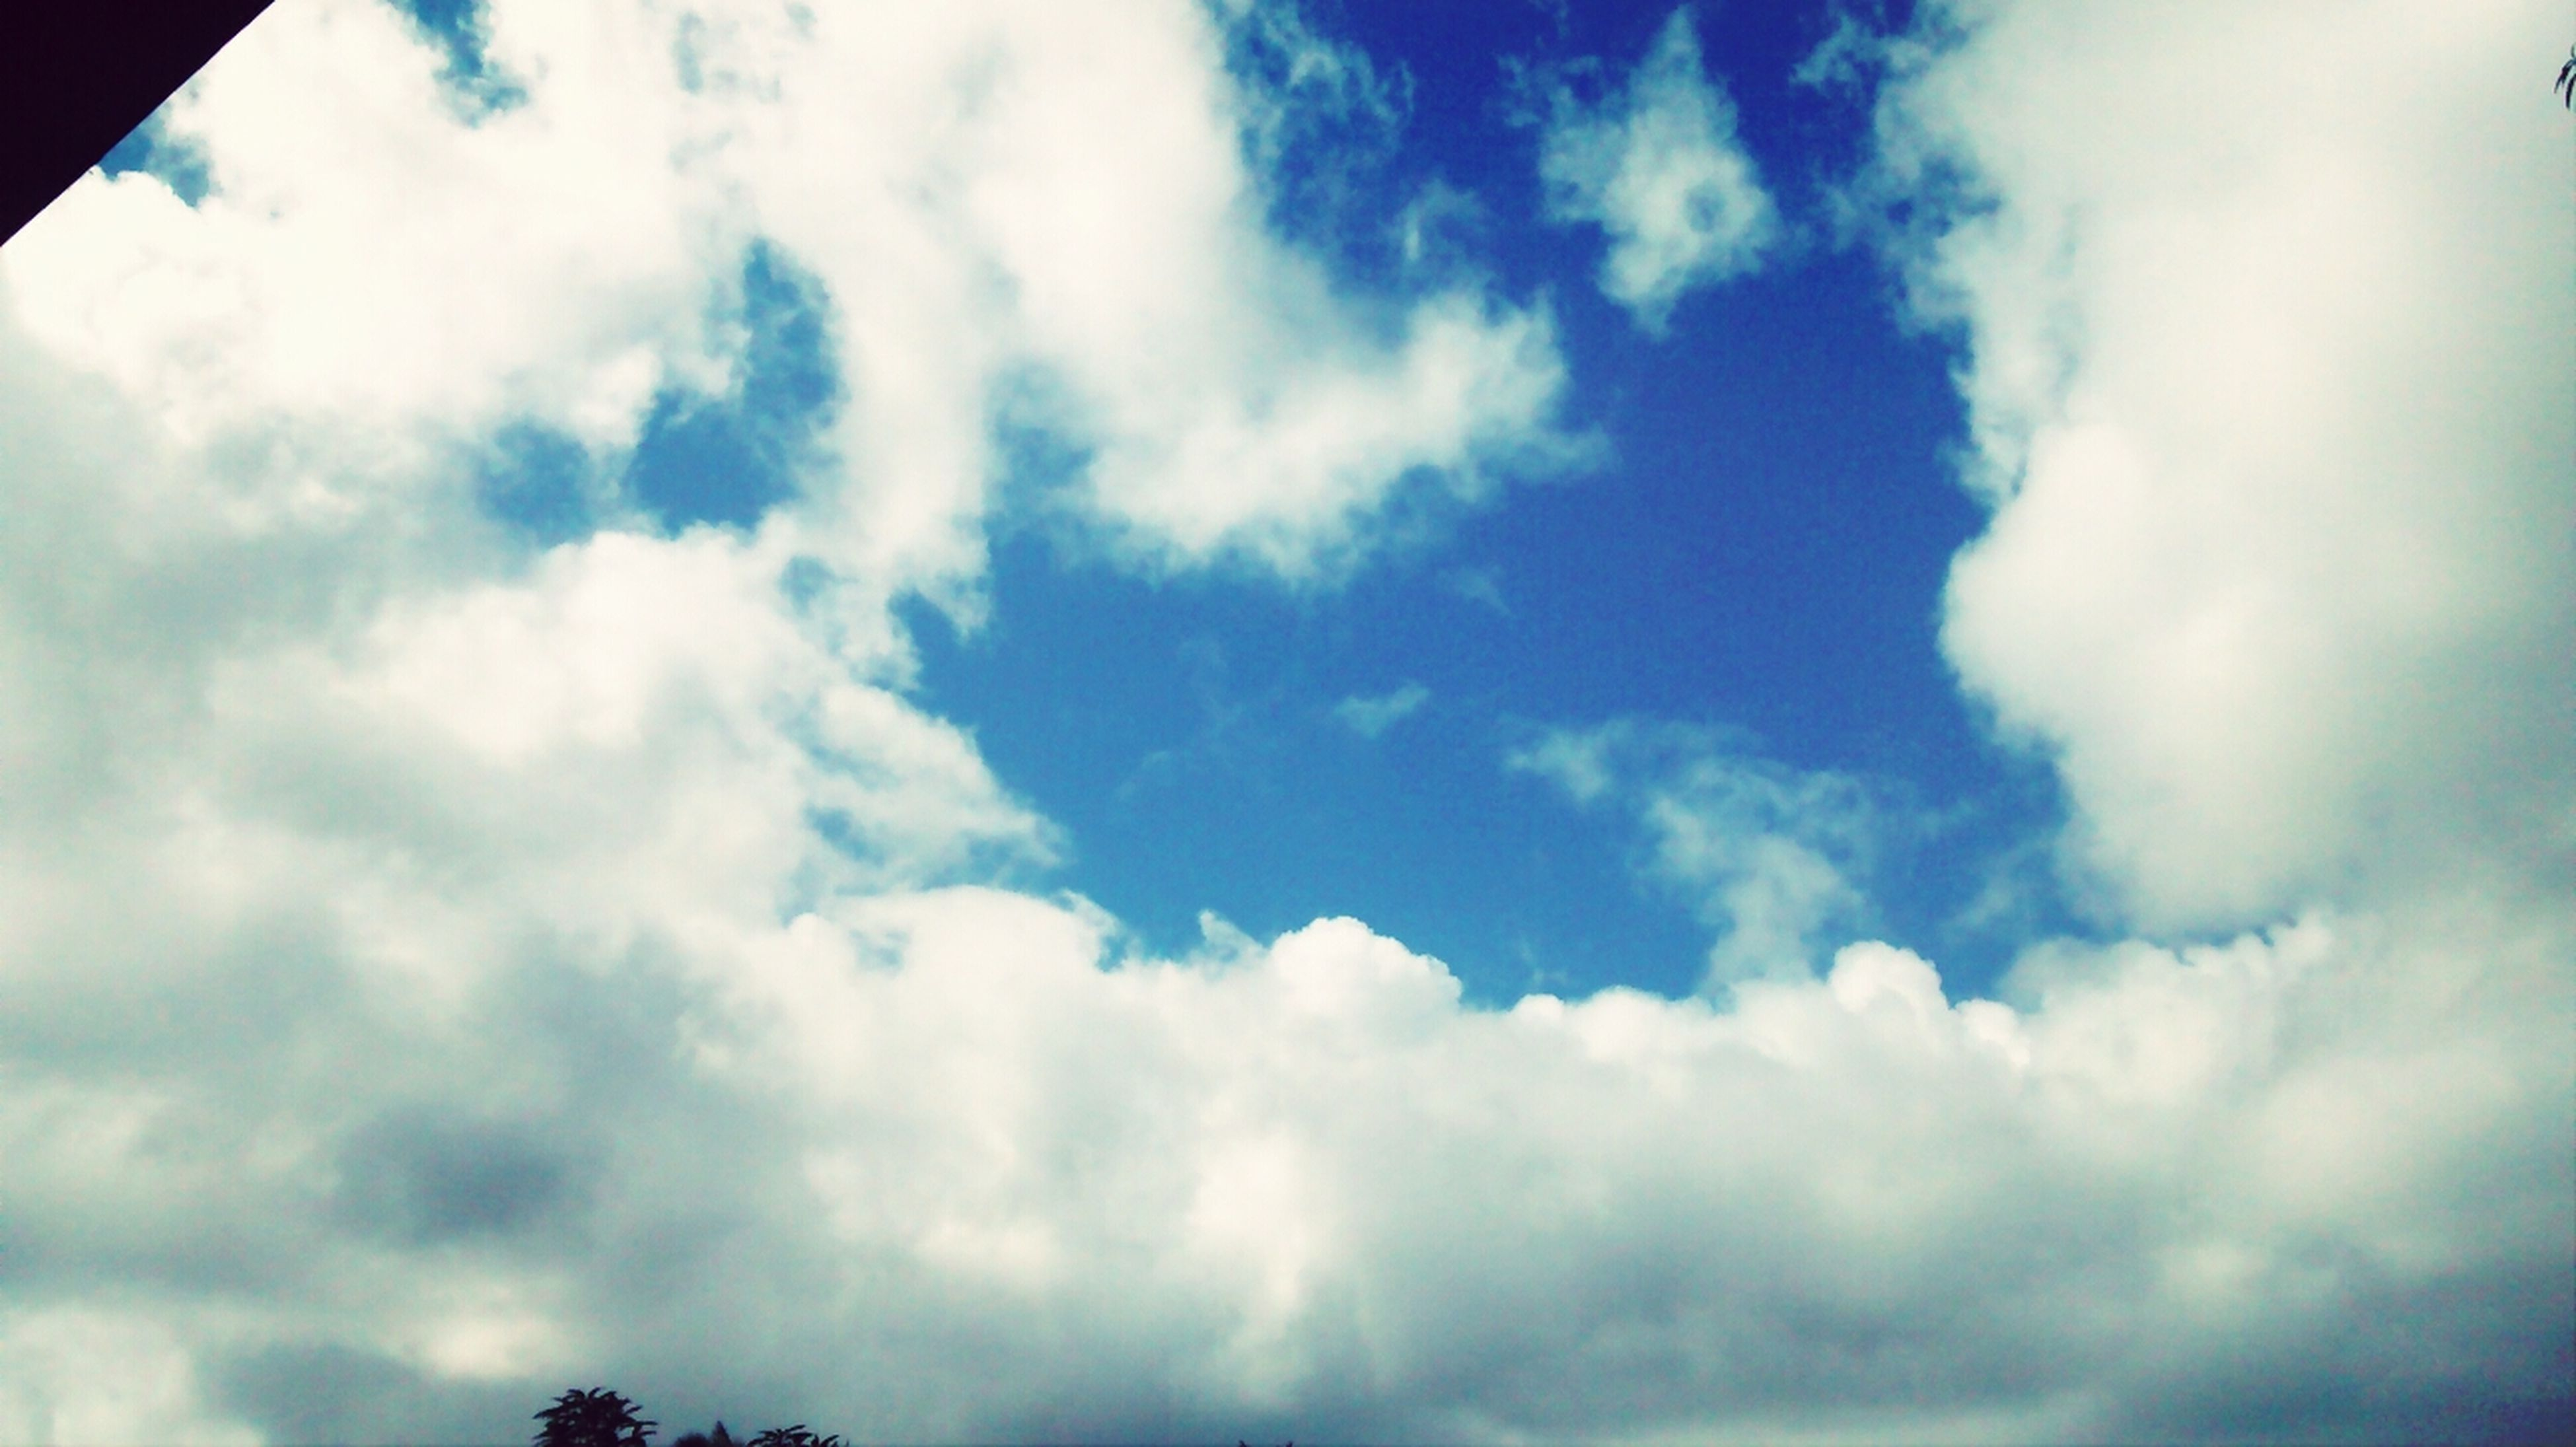 sky, low angle view, cloud - sky, cloudy, sky only, beauty in nature, blue, tranquility, cloud, cloudscape, scenics, nature, tranquil scene, white color, backgrounds, idyllic, day, outdoors, no people, weather